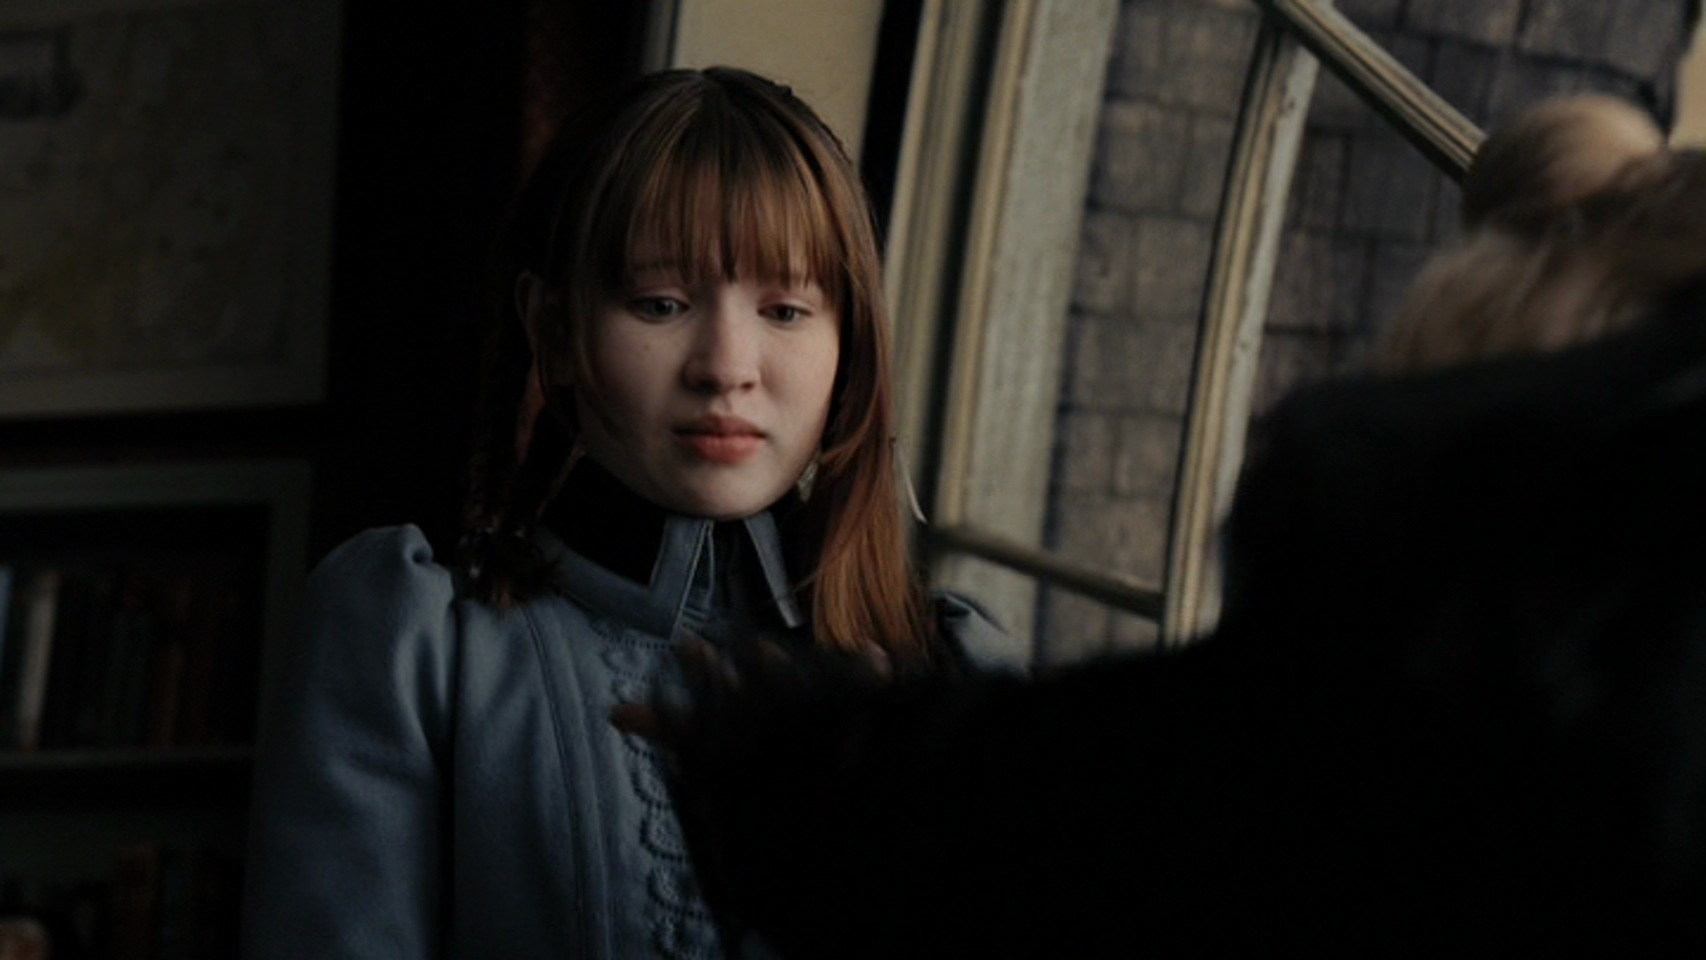 A Series of Unfortunate Events - Emily Browning Image ...